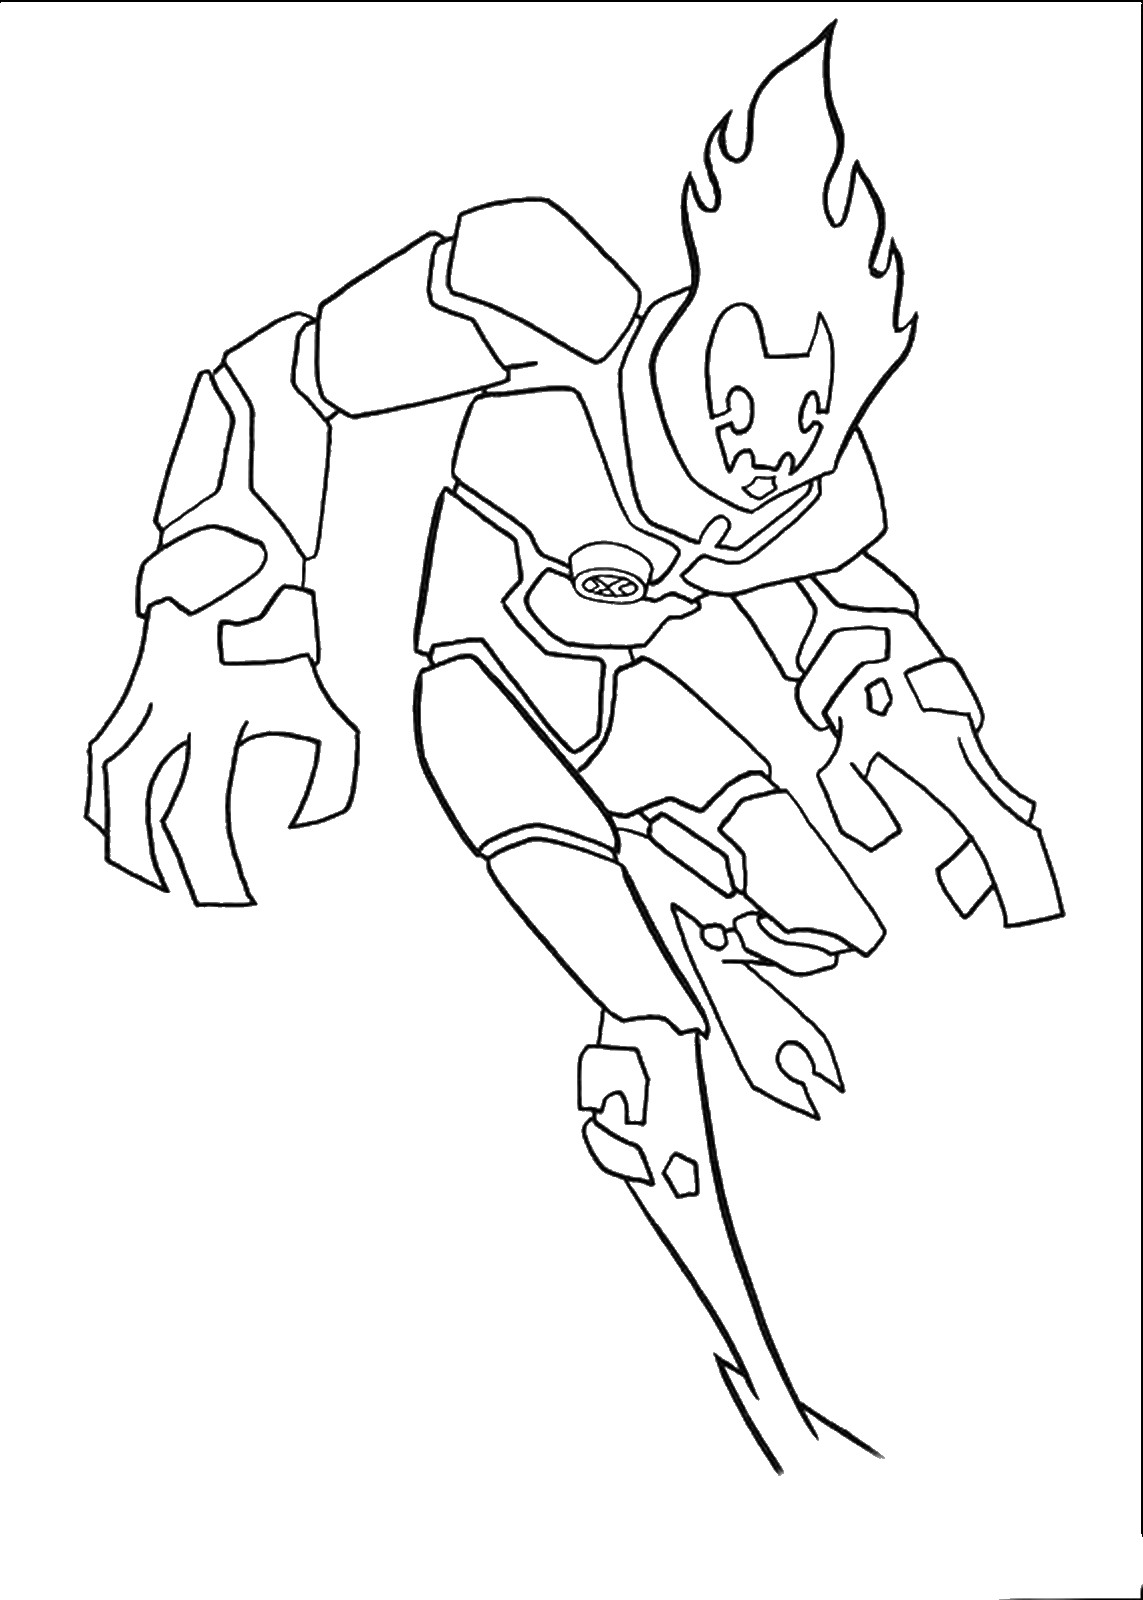 ben 10 for coloring printable ben 10 eatle coloring pages alien ultimate pictures coloring 10 for ben